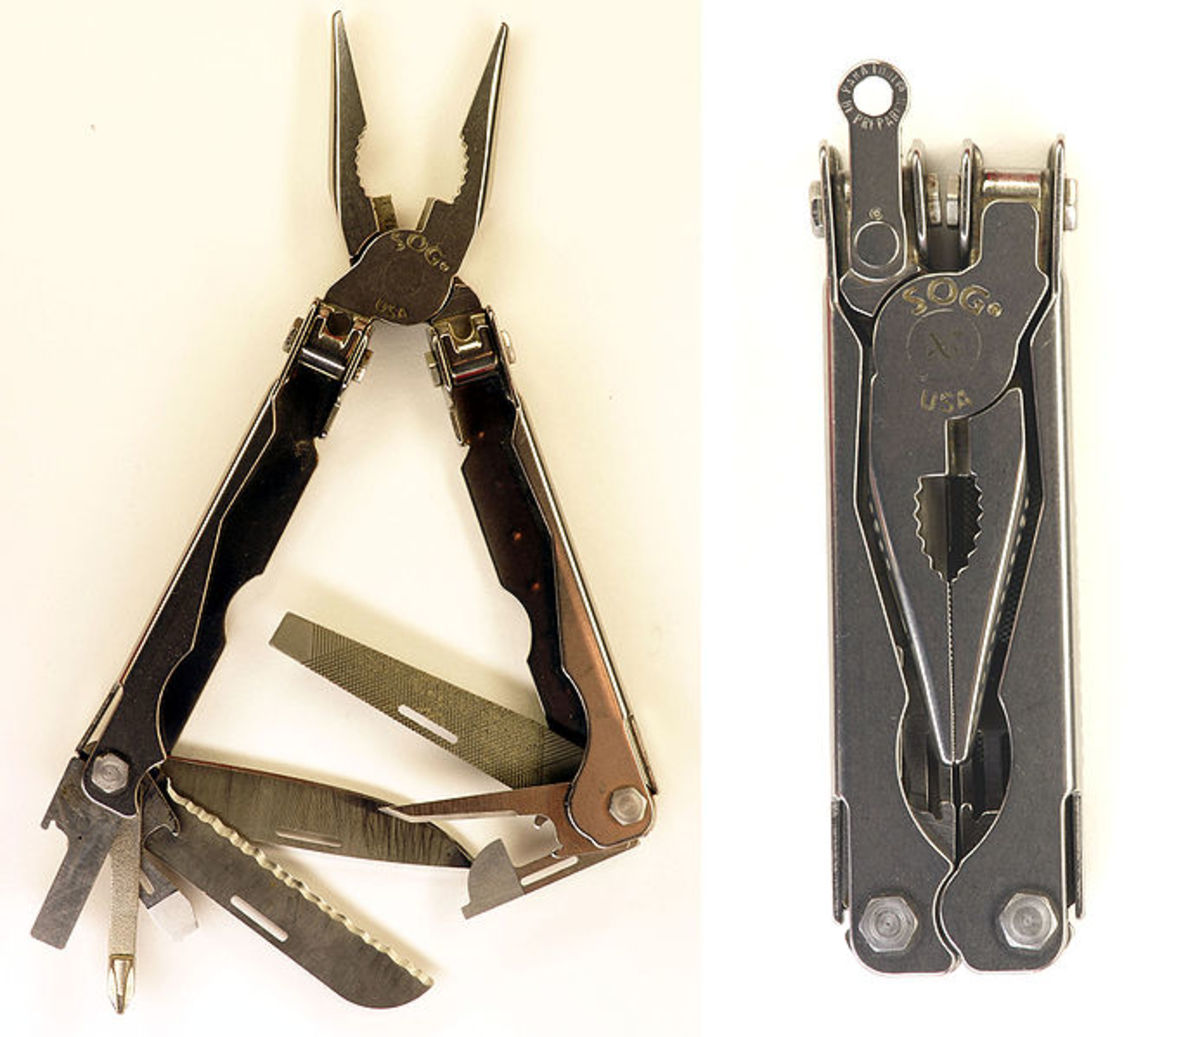 The wonderful tools are compact enough to carry on a belt and will do anythiing